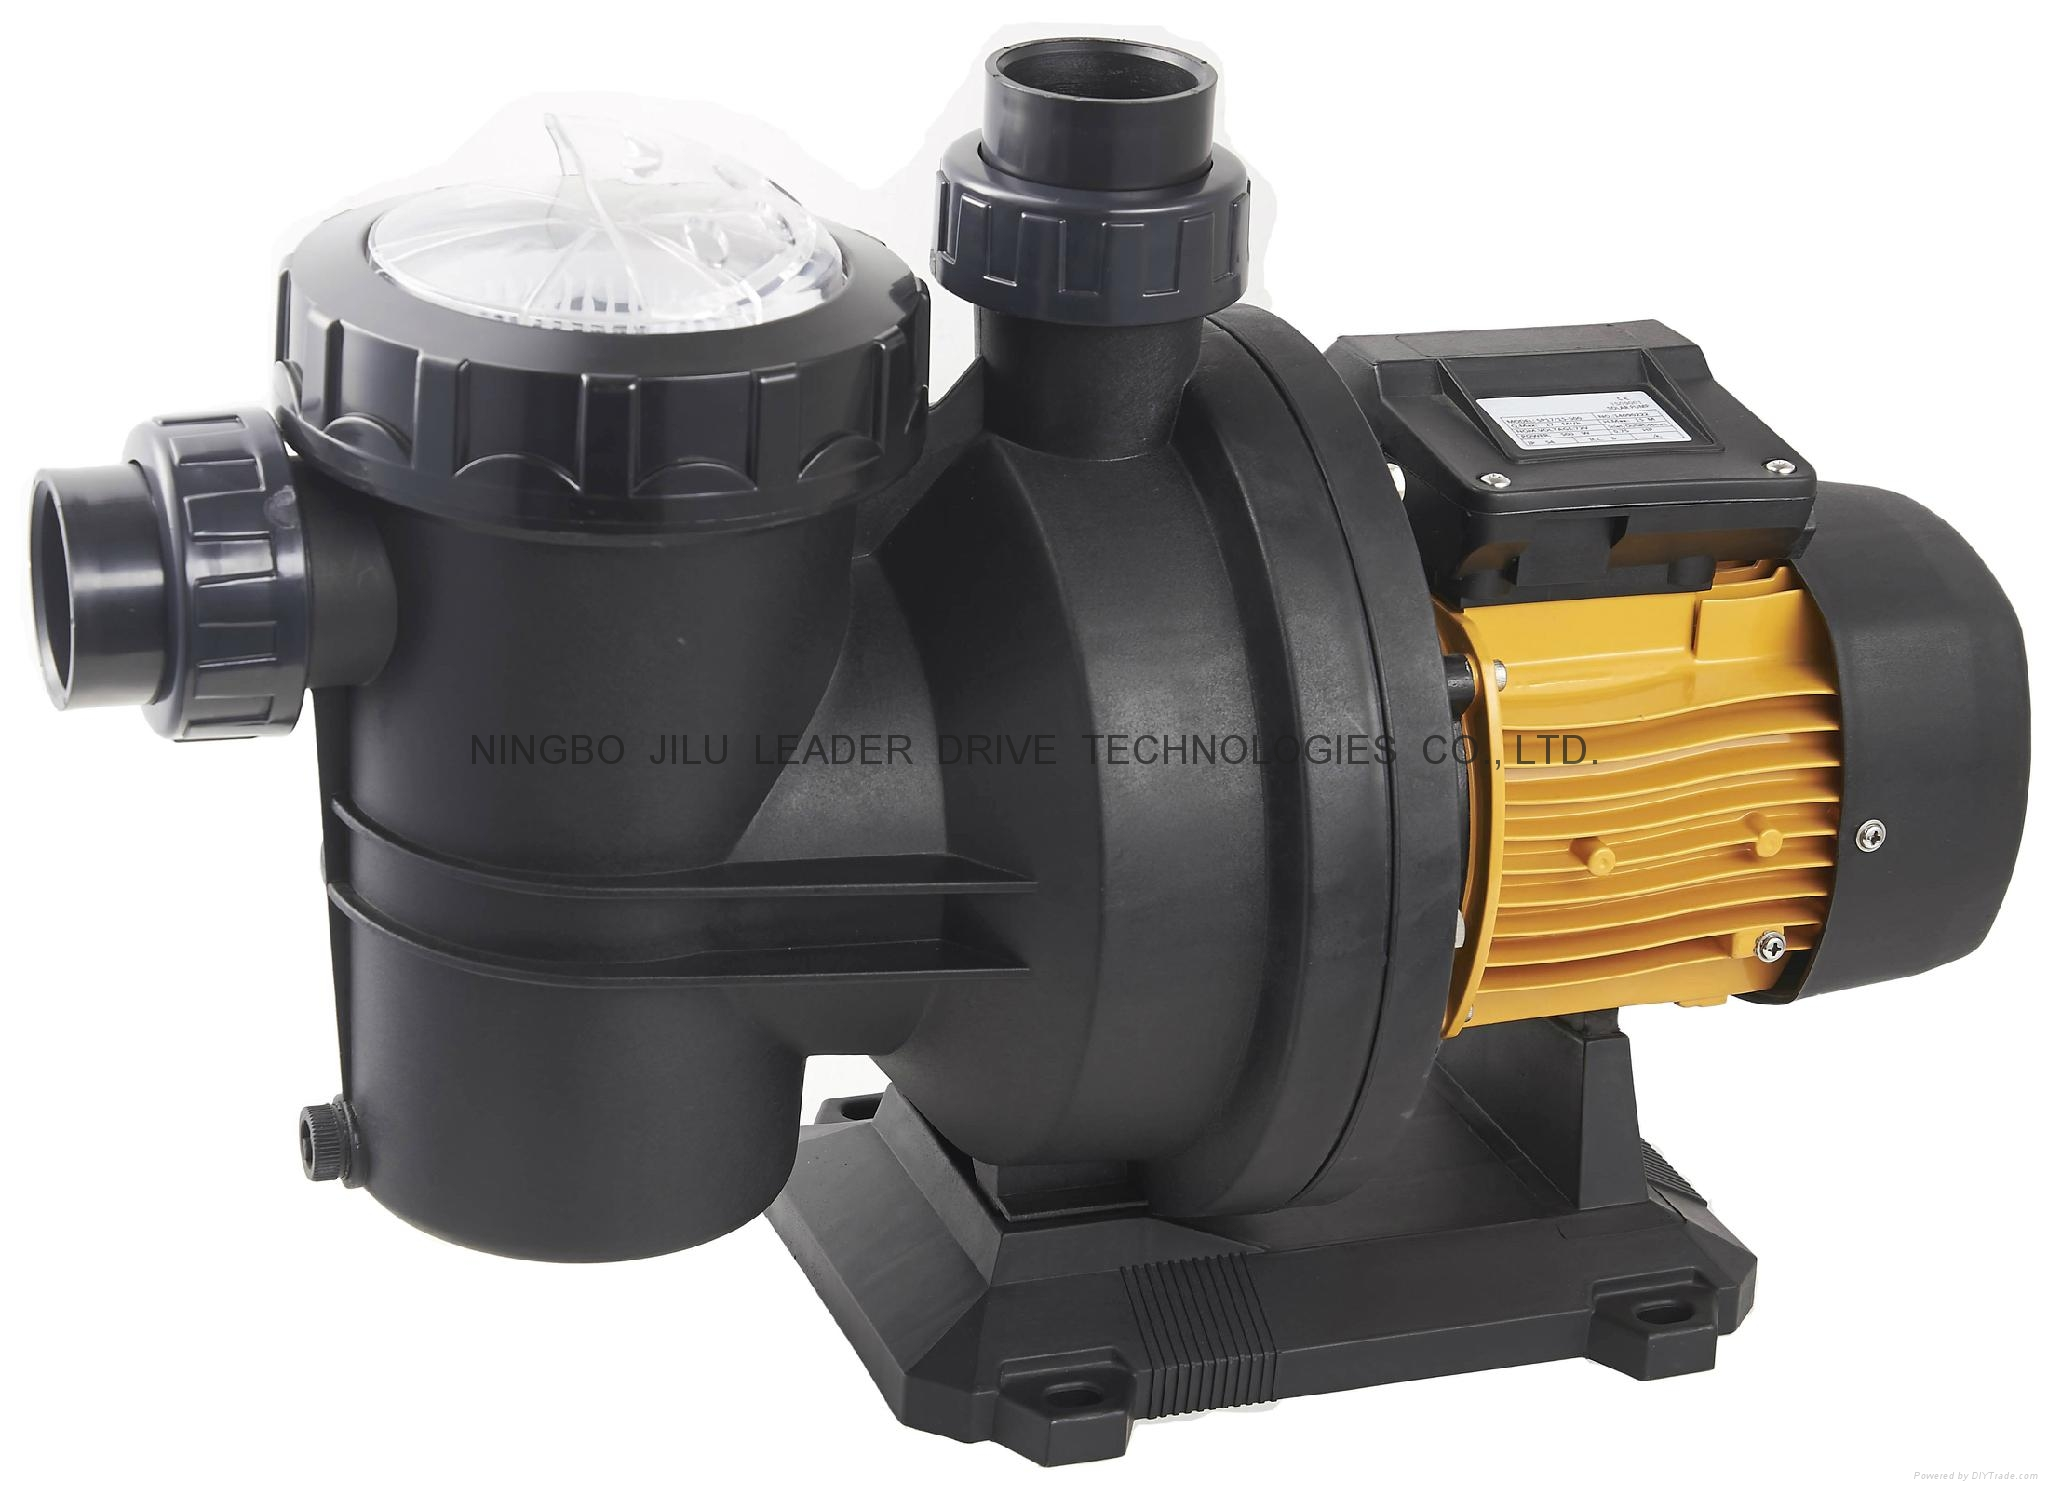 21l Solar Swimming Pool Pump 17 15 D48 500 Jl China Manufacturer Pumps Vacuum Equipment